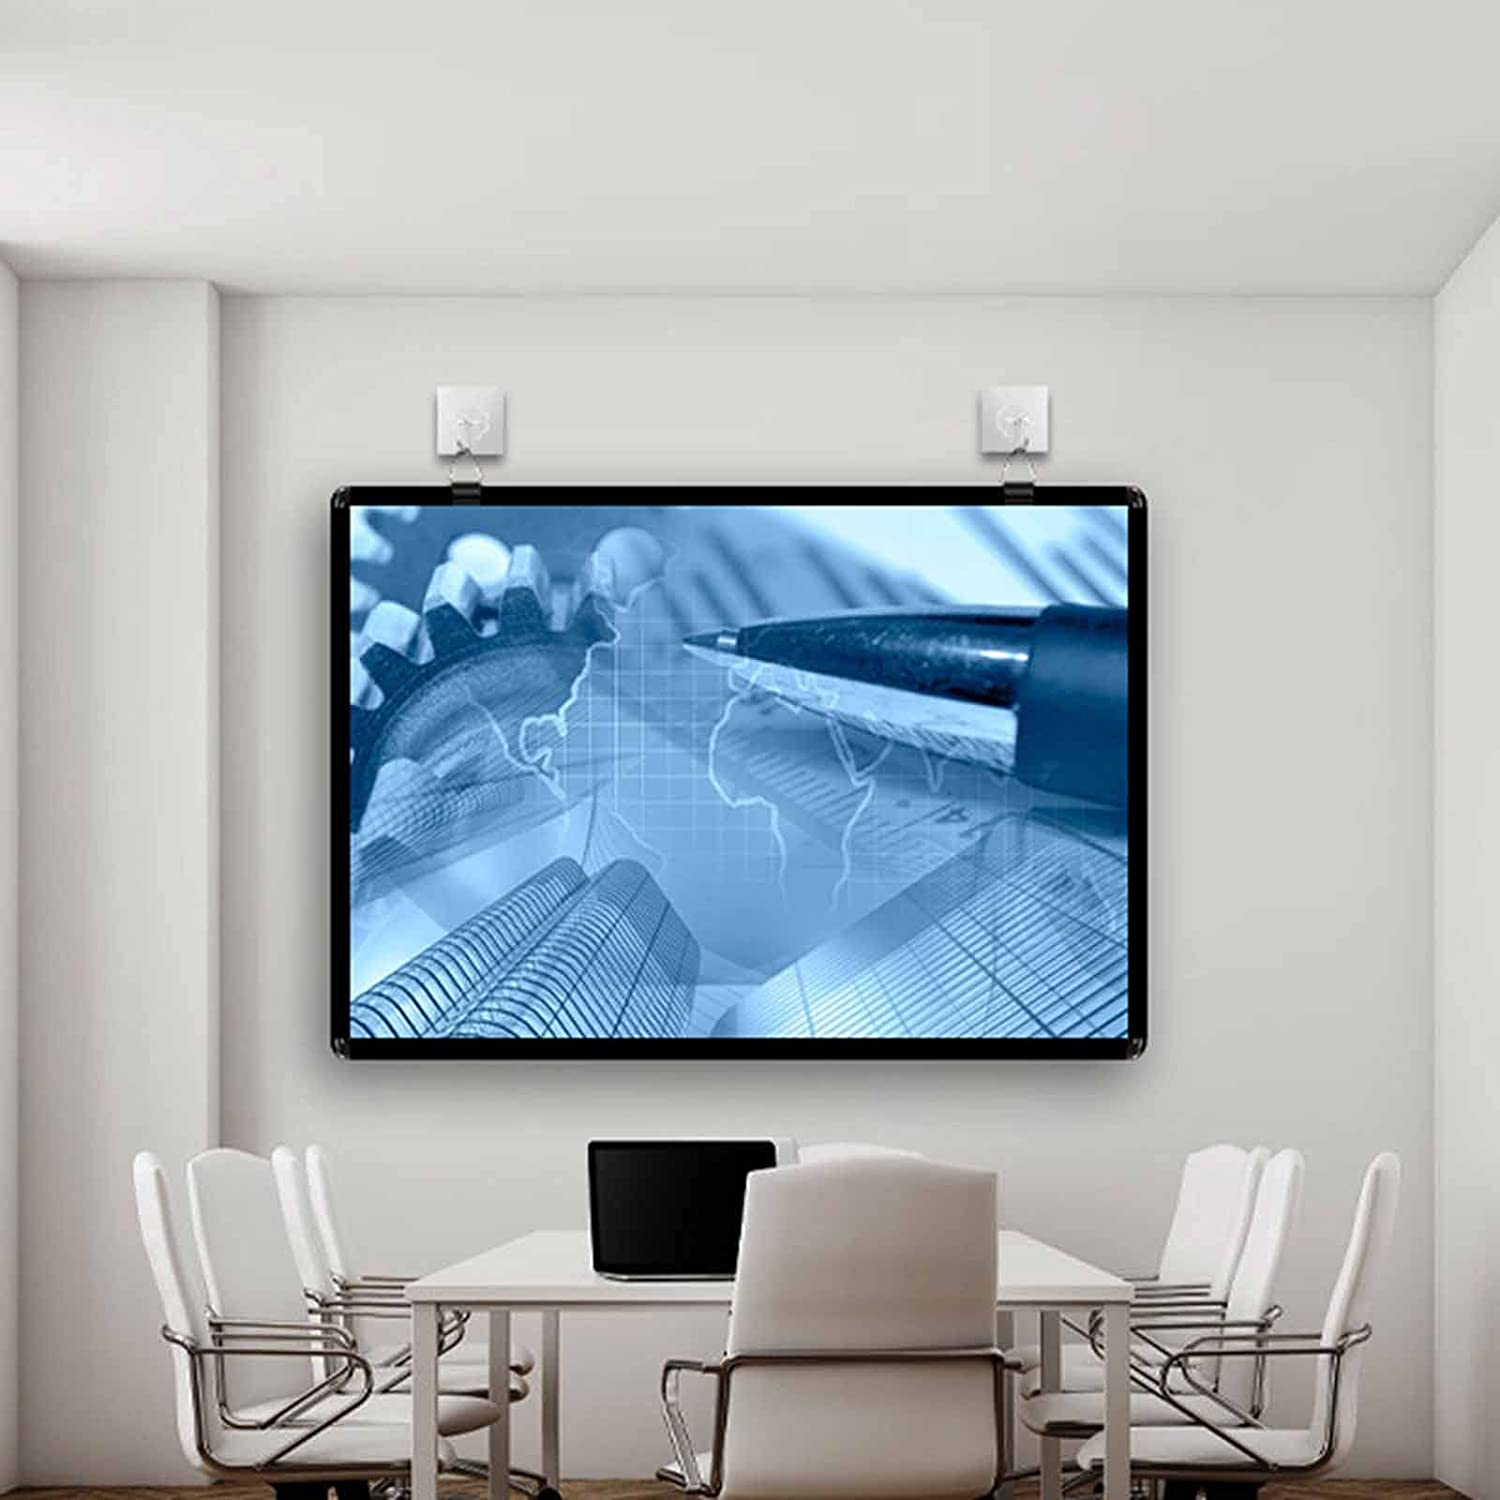 Video Projection Screens 60 Inch 1.29x0.73m Projector Screen HD Limited time Max 64% OFF for free shipping